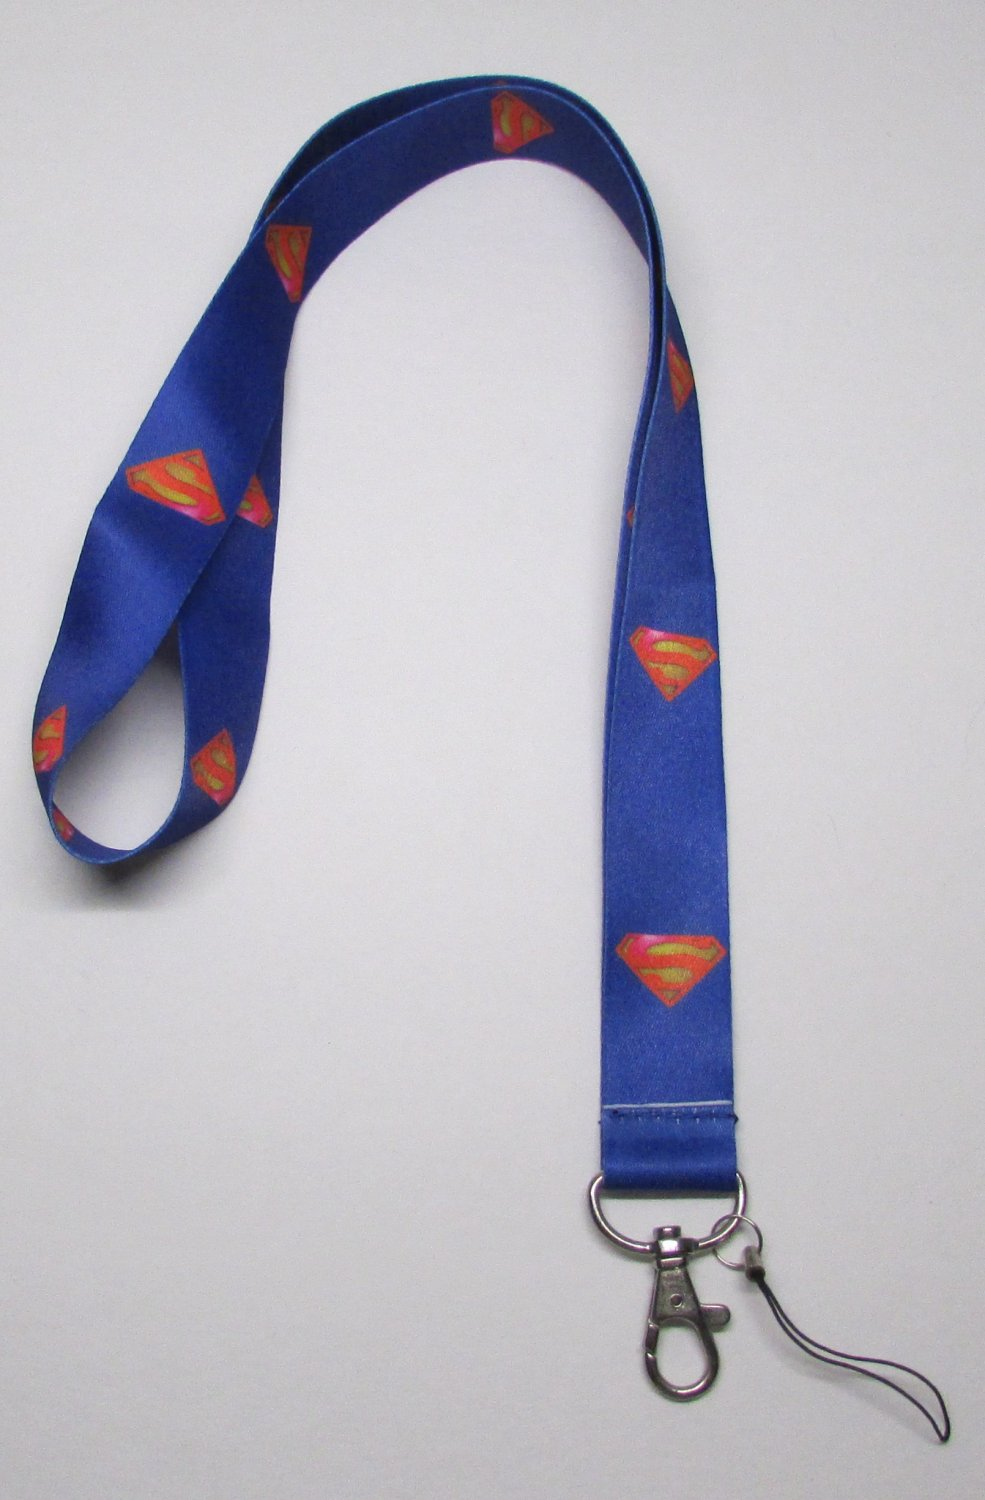 Blue SUPERMAN LANYARD KEY CHAIN Ring Keychain ID Holder NEW